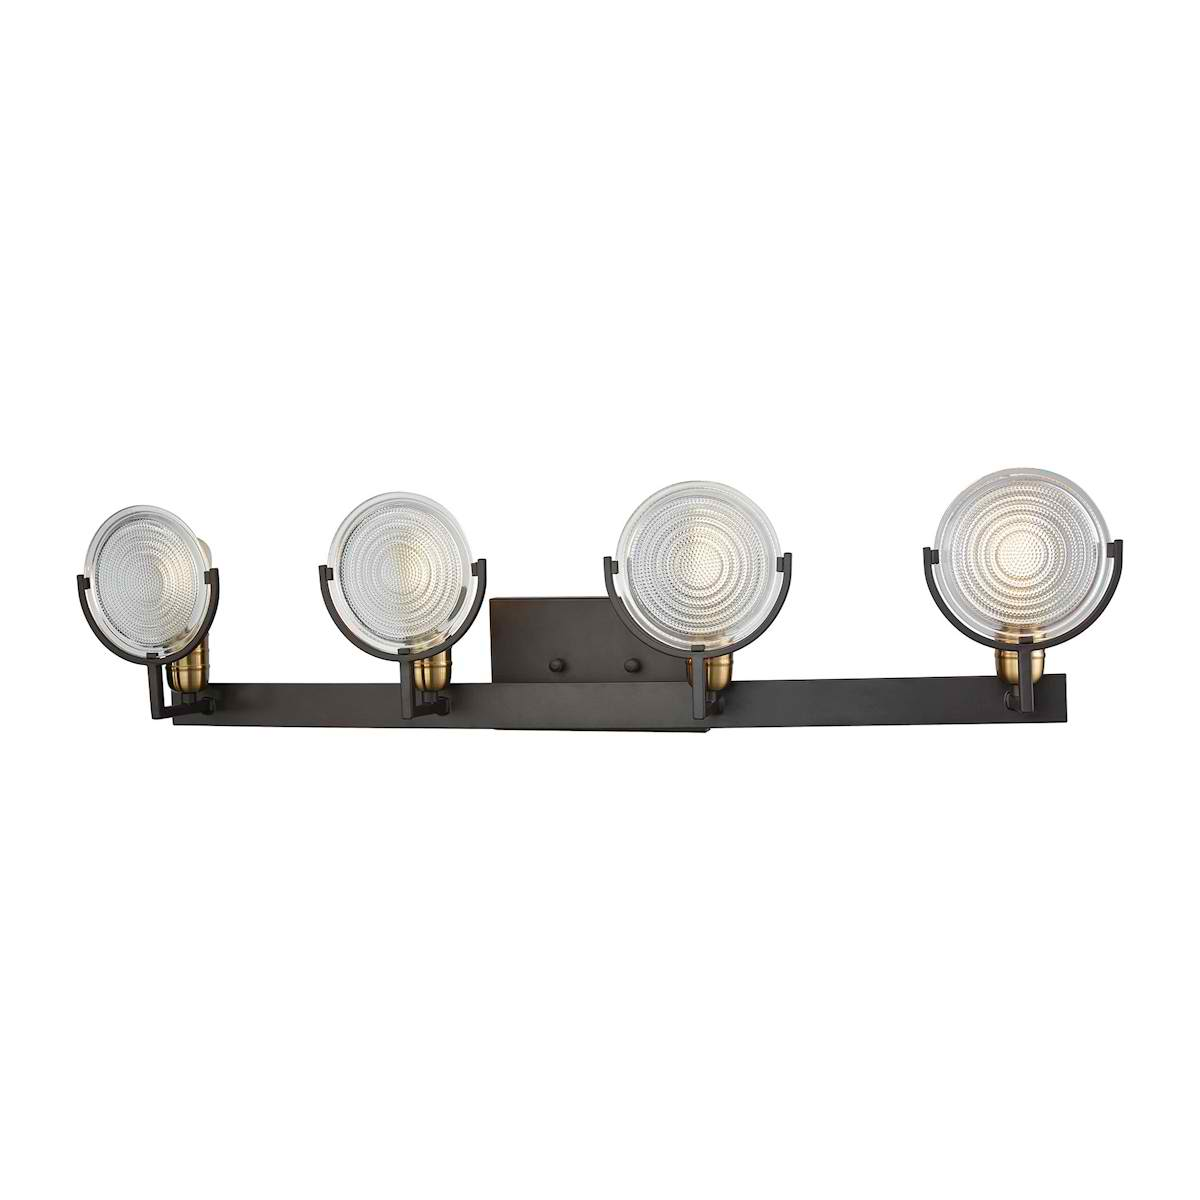 Ocular 4 Light Vanity in Oil Rubbed Bronze with Satin Brass Accents and Clear Railroad Light Glass